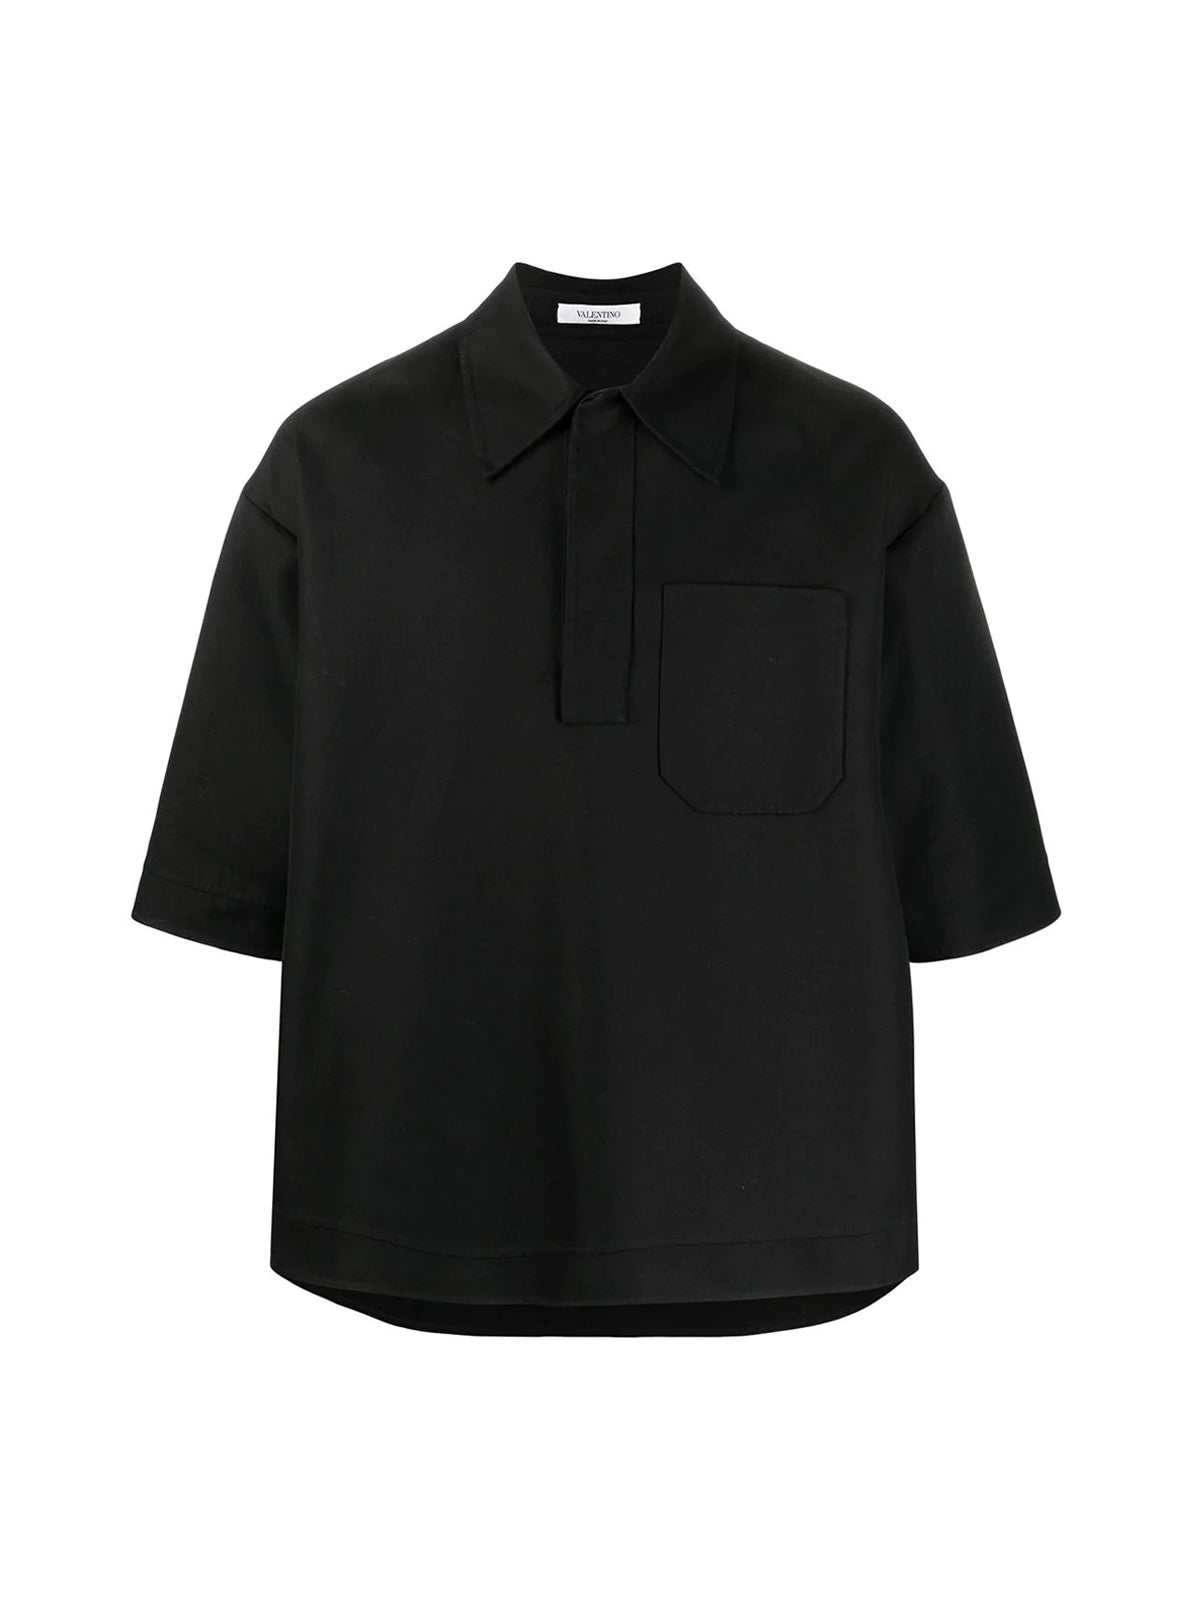 double-faced cotton polo shirt